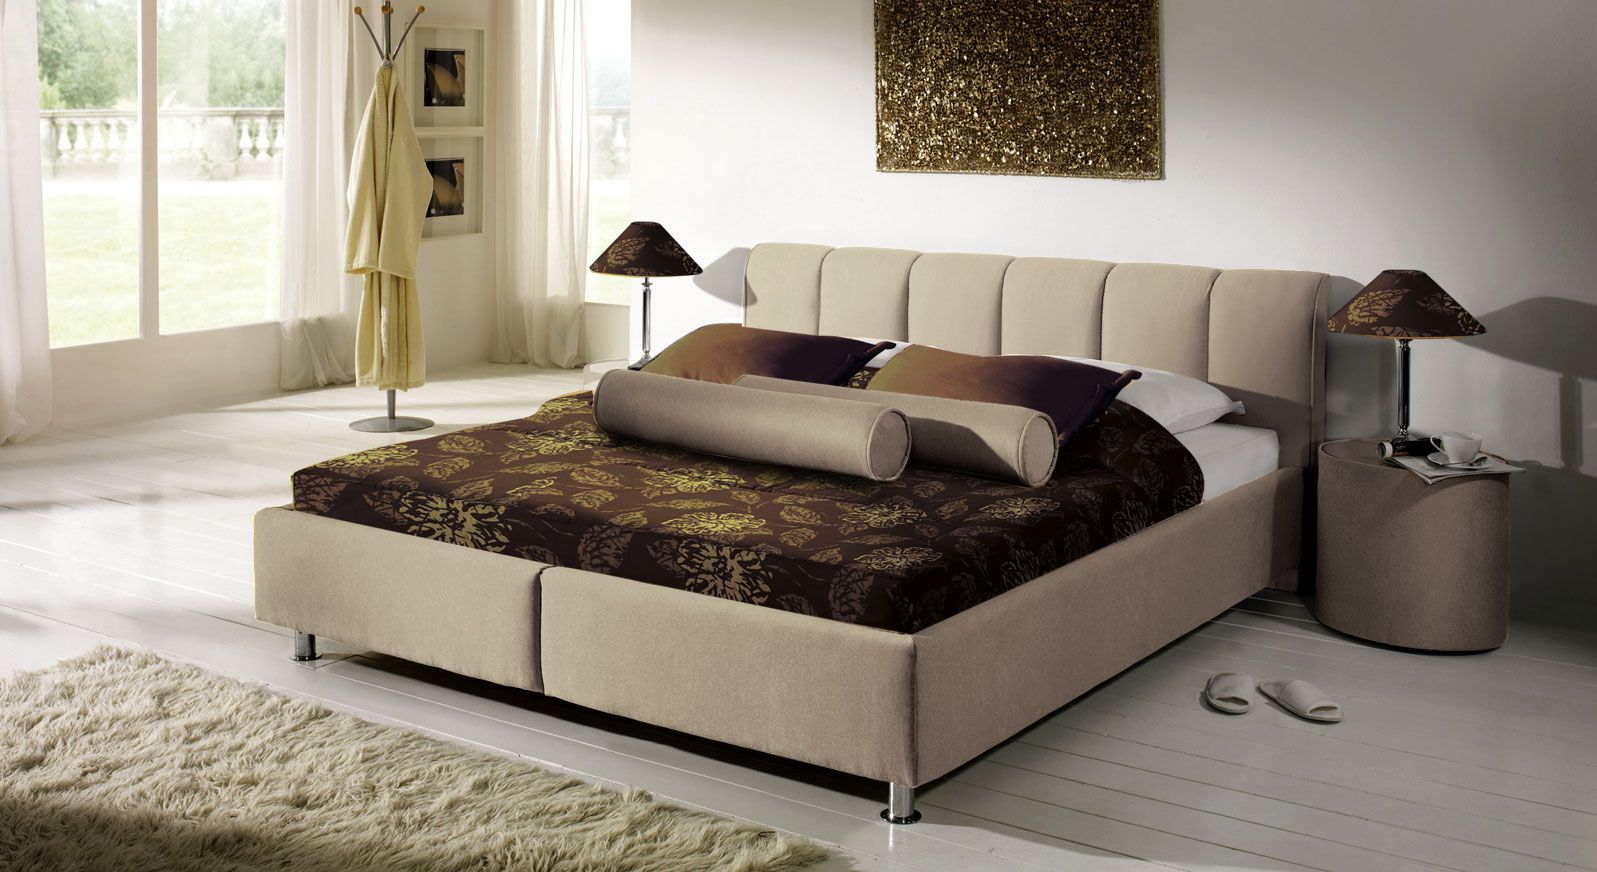 Bett Modica graubeige Microvelours